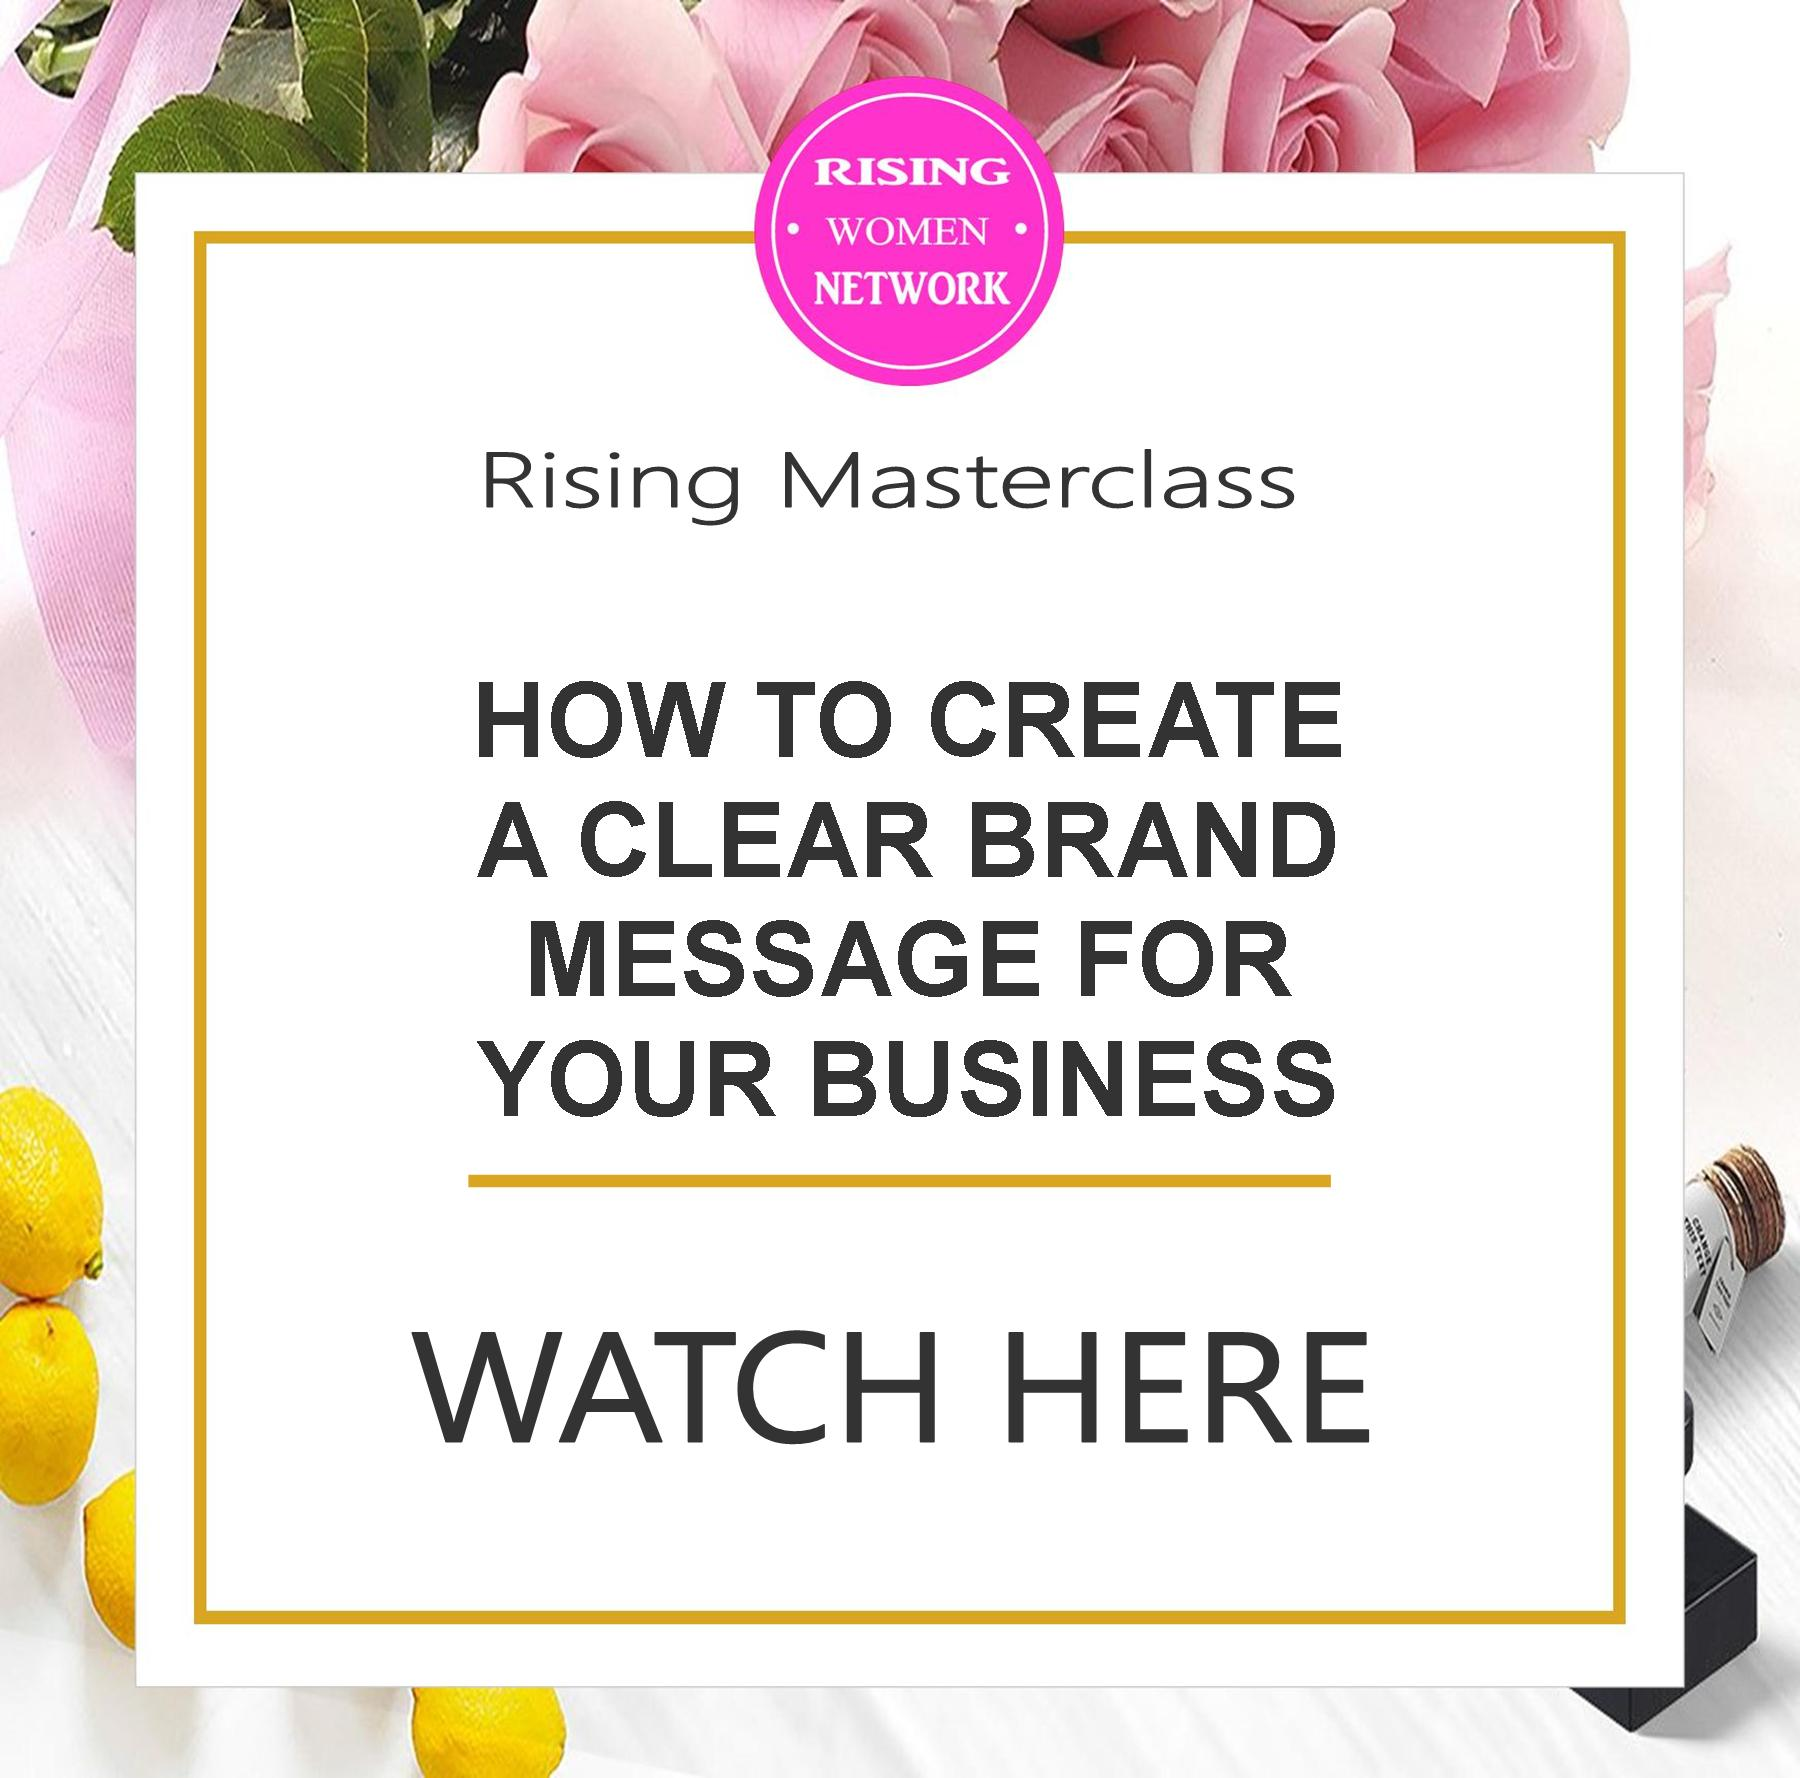 How to create a clear brand message for your business